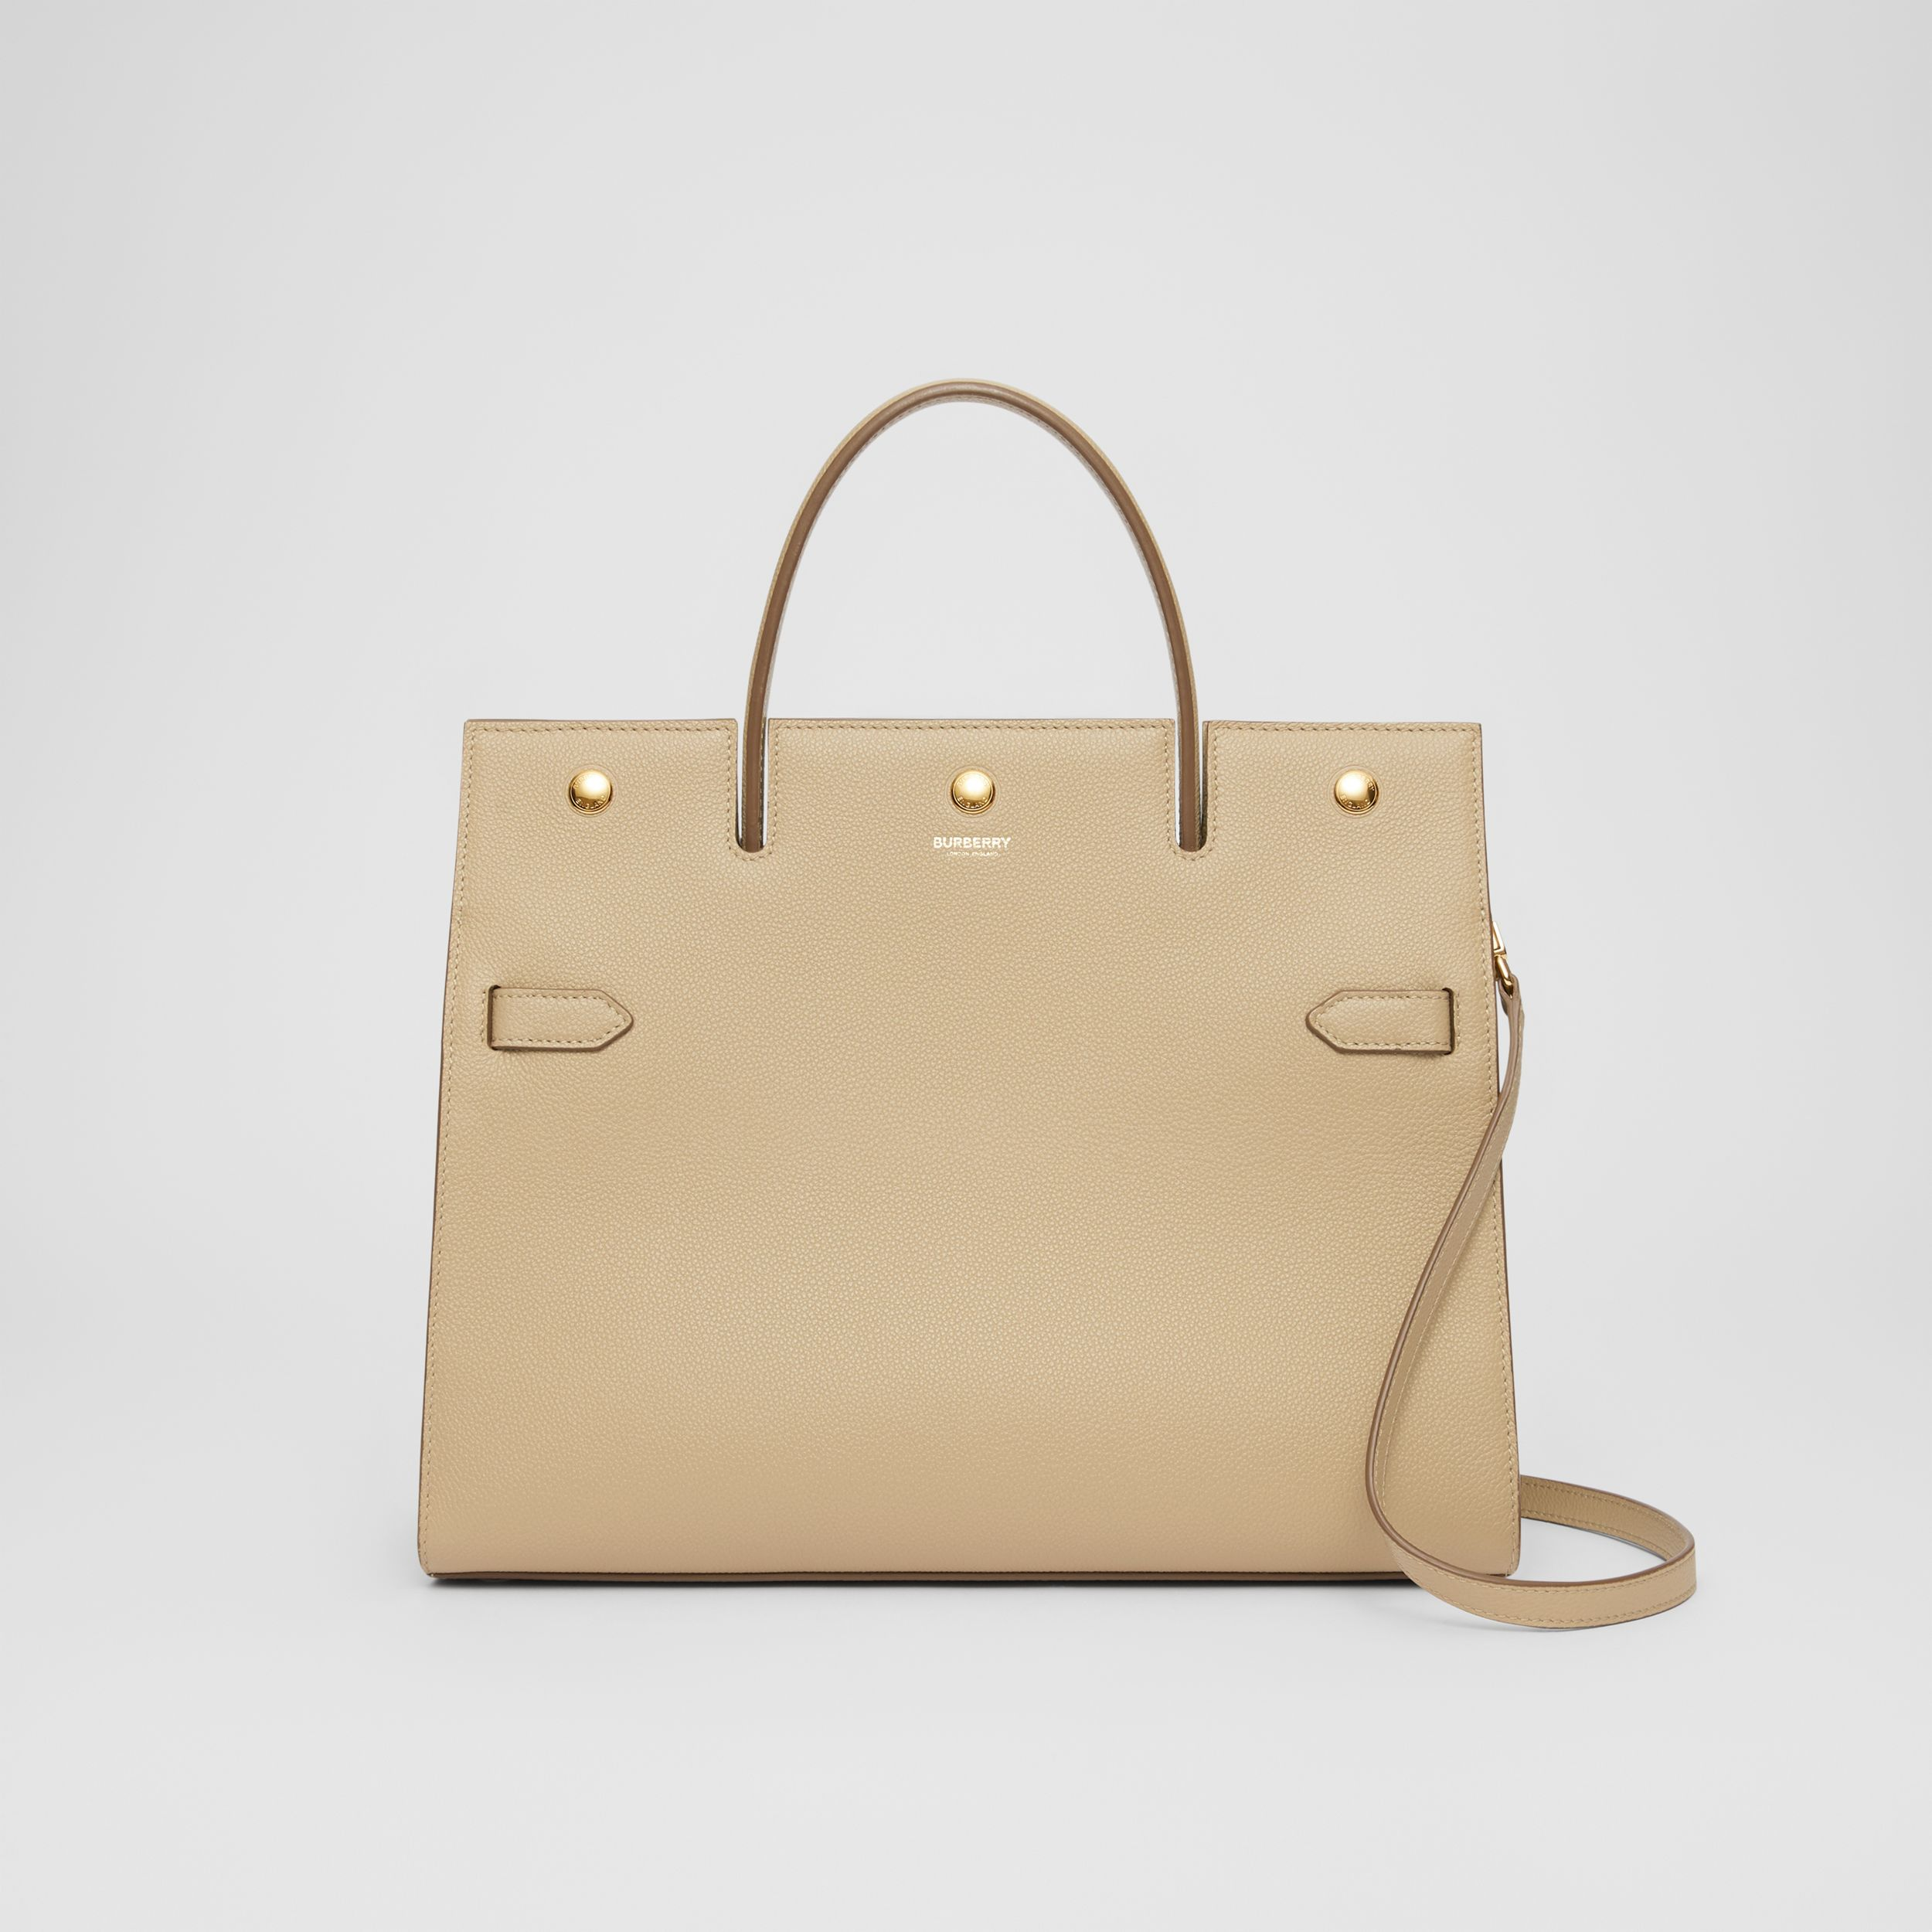 Medium Leather Title Bag in Honey - Women | Burberry - 1